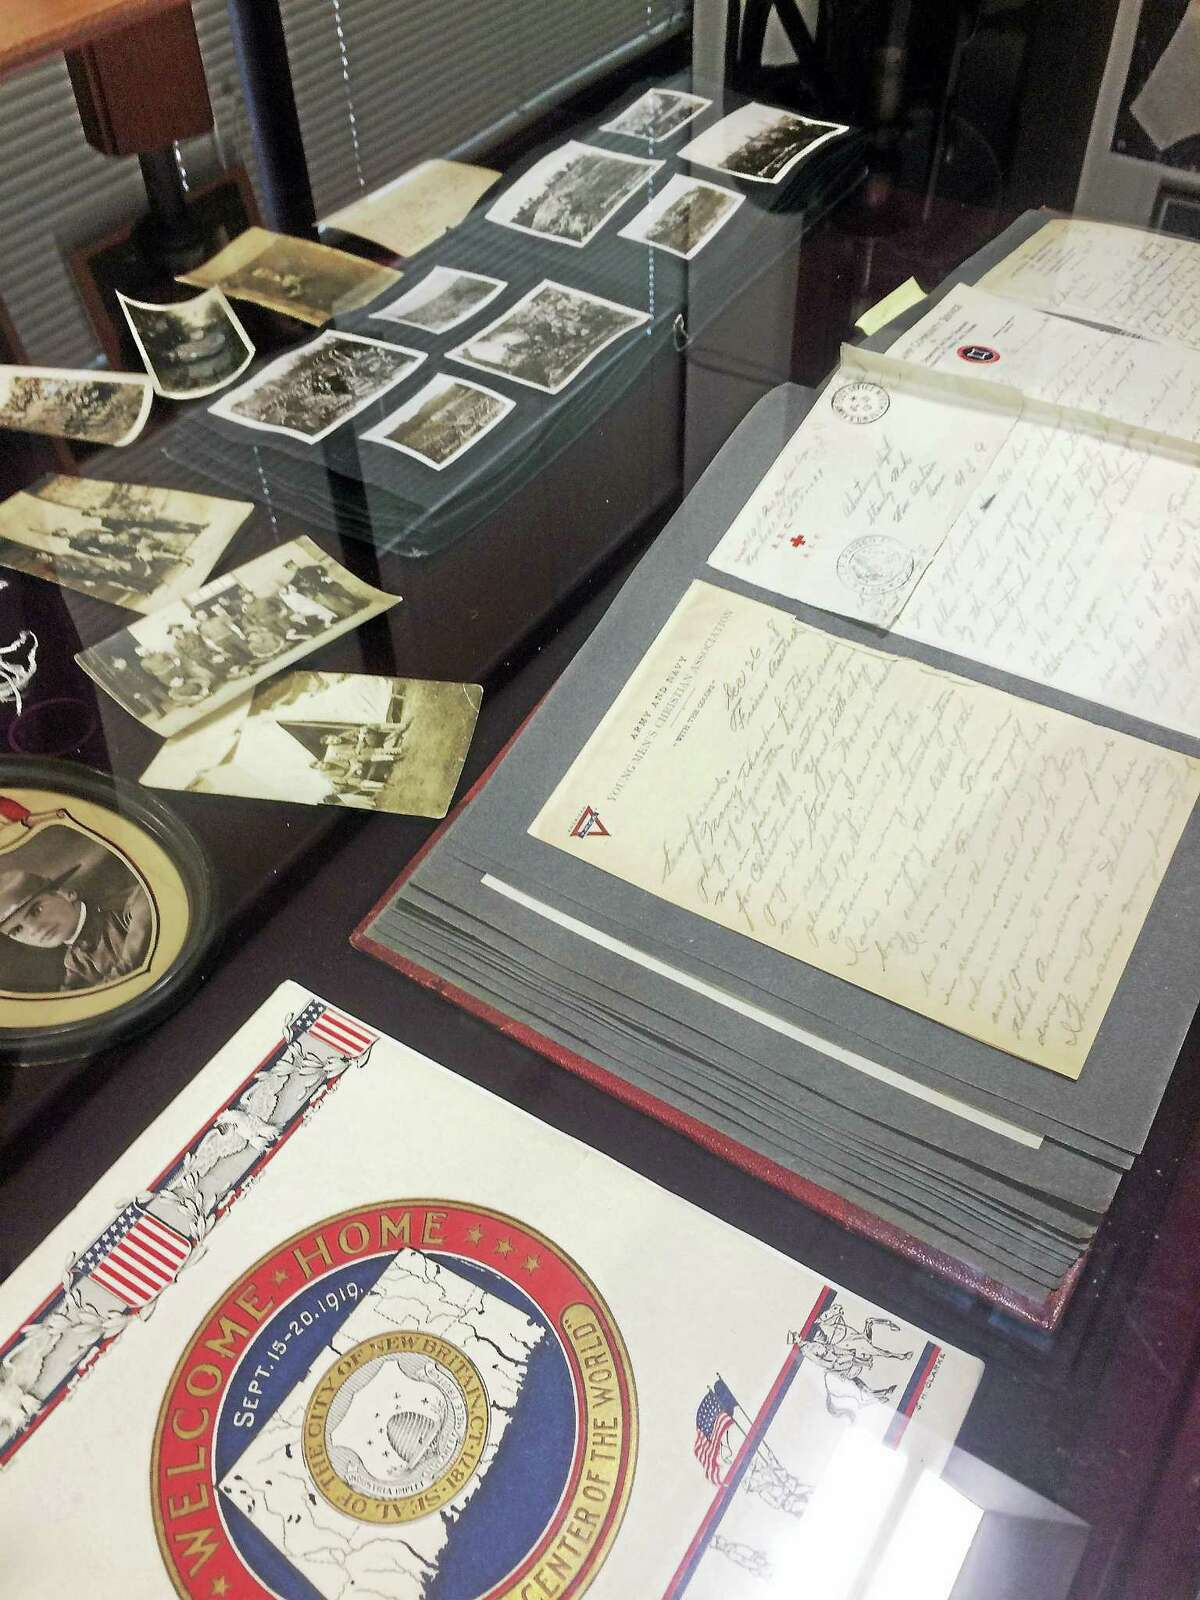 Original letters from WW I soldiers, who worked at Stanley Works in New Britain.